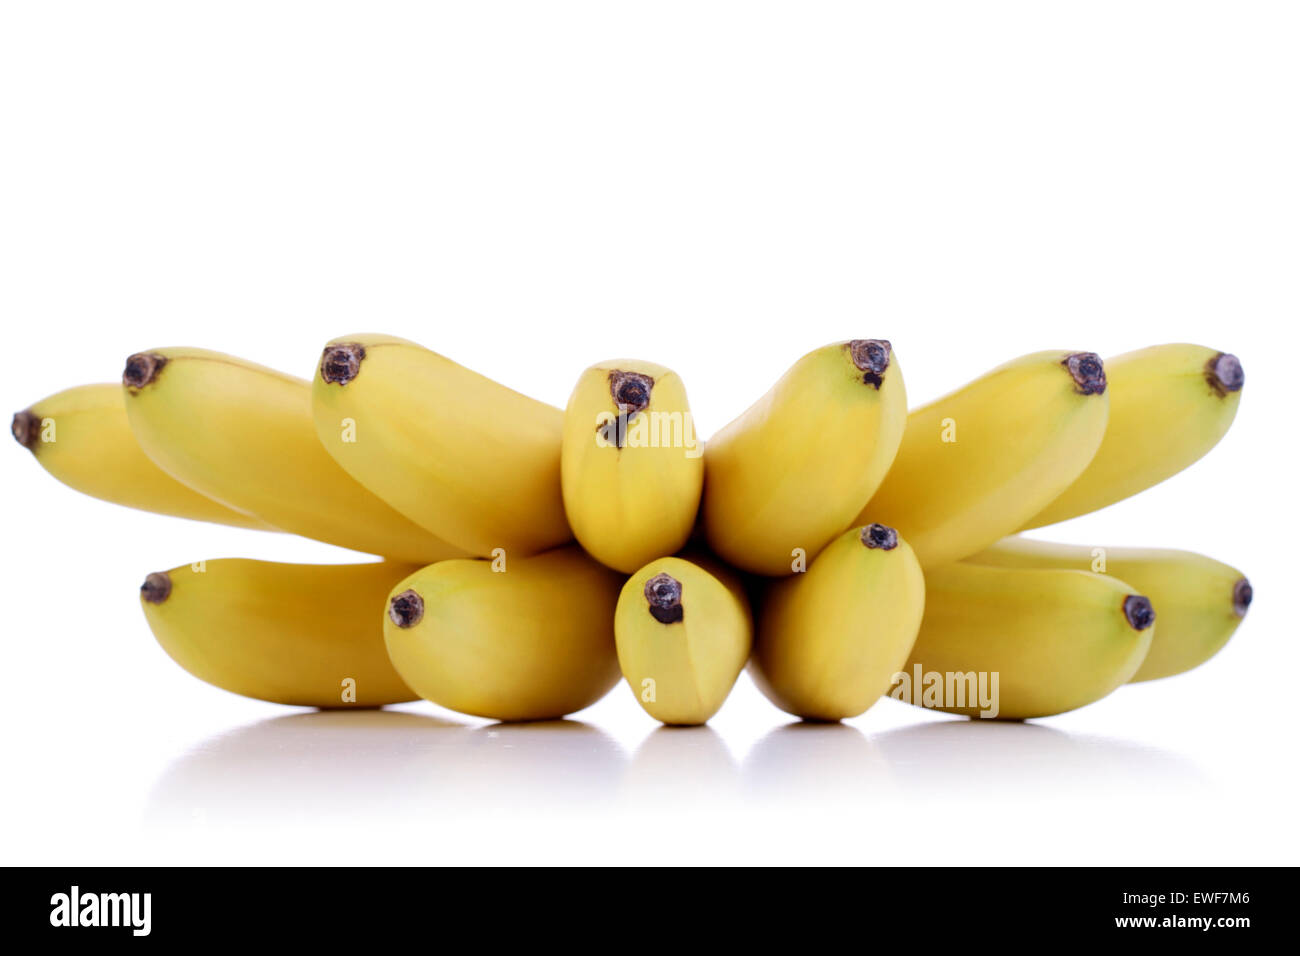 studio shot of small bananas stock photo: 84543206 - alamy